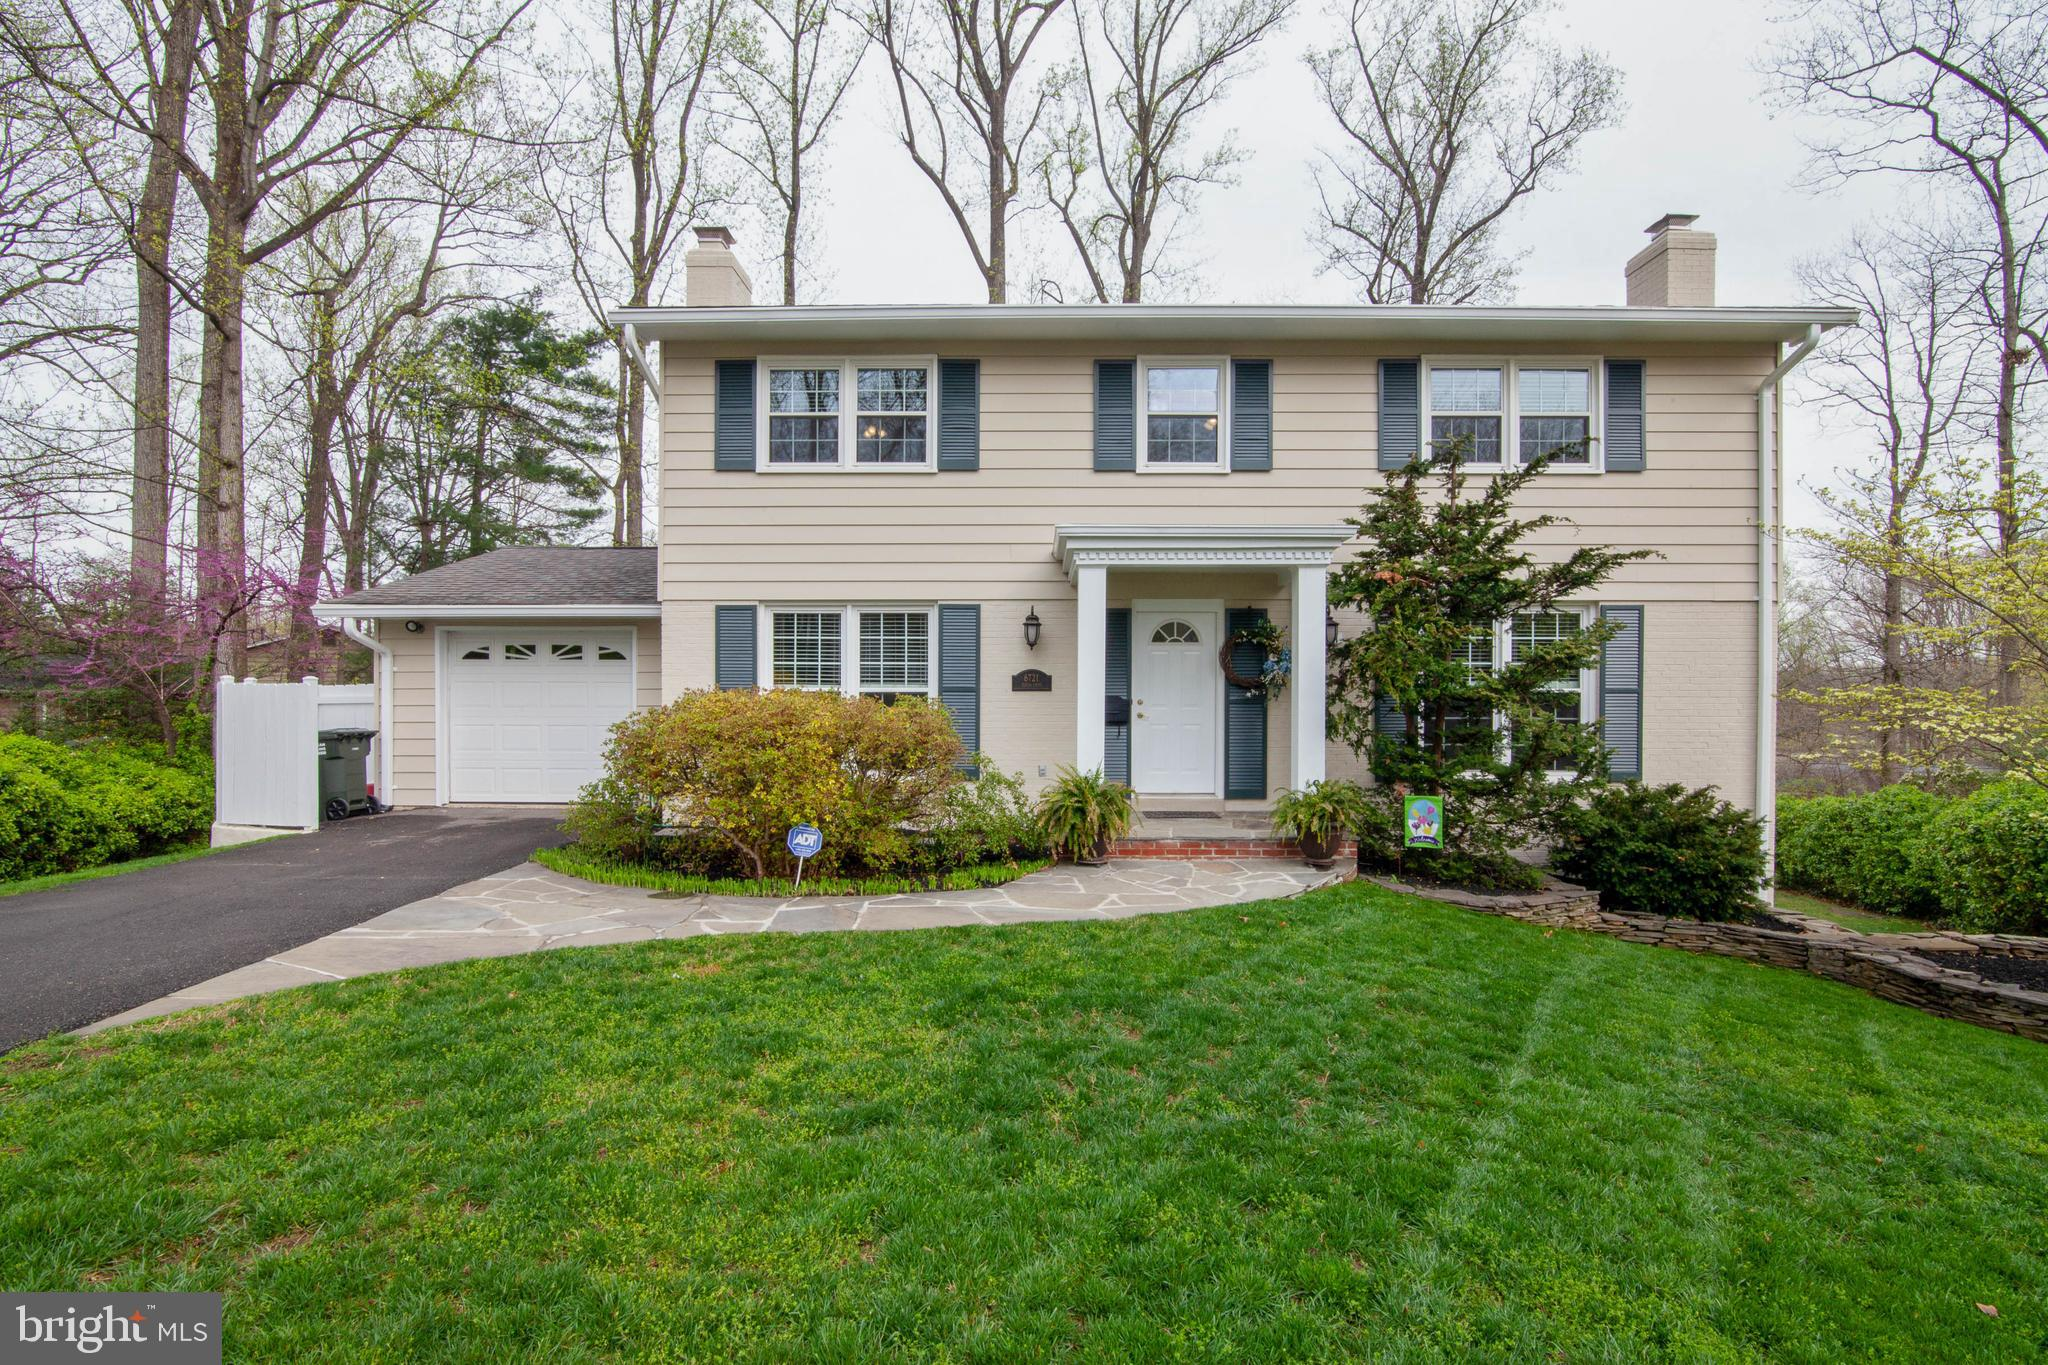 Incredible opportunity to call this charming 3 finished level Colonial your home.  Located at the end of a quiet cul-de-sac with a beautifully landscaped yard on 1/3rd of an acre.  Impressive stone walk way.  Large multi-level deck is perfect for entertaining with a Hot Tub and dedicated gas line for a grill.  If you like the outdoors and entertaining, this is ideal.  Walk out basement leads to stone patio.  5 Bedrooms.  2.5 Baths.  Exceptional upgraded cabinets and granite counters in Kitchen.  Walk in pantry.  Formal Living and Dining Rooms with wood floors.  Kitchen table space and bay window. Separate laundry room with utility sink. 1 car garage with storage.  Upgraded granite counters and tiling in bathrooms.  Large lower level recreation room walks out to back yard.  New carpets and flooring.  Office/Exercise area.  Spacious storage/utility/workshop.  Direct bus to Pentagon right at beginning of the cul-de-sac.  Close to Ft. Belvoir. Easy access to FFX Parkway and to metro.  Close to Burke and Springfield Town Center.  Close golf and county parks.  A must see!